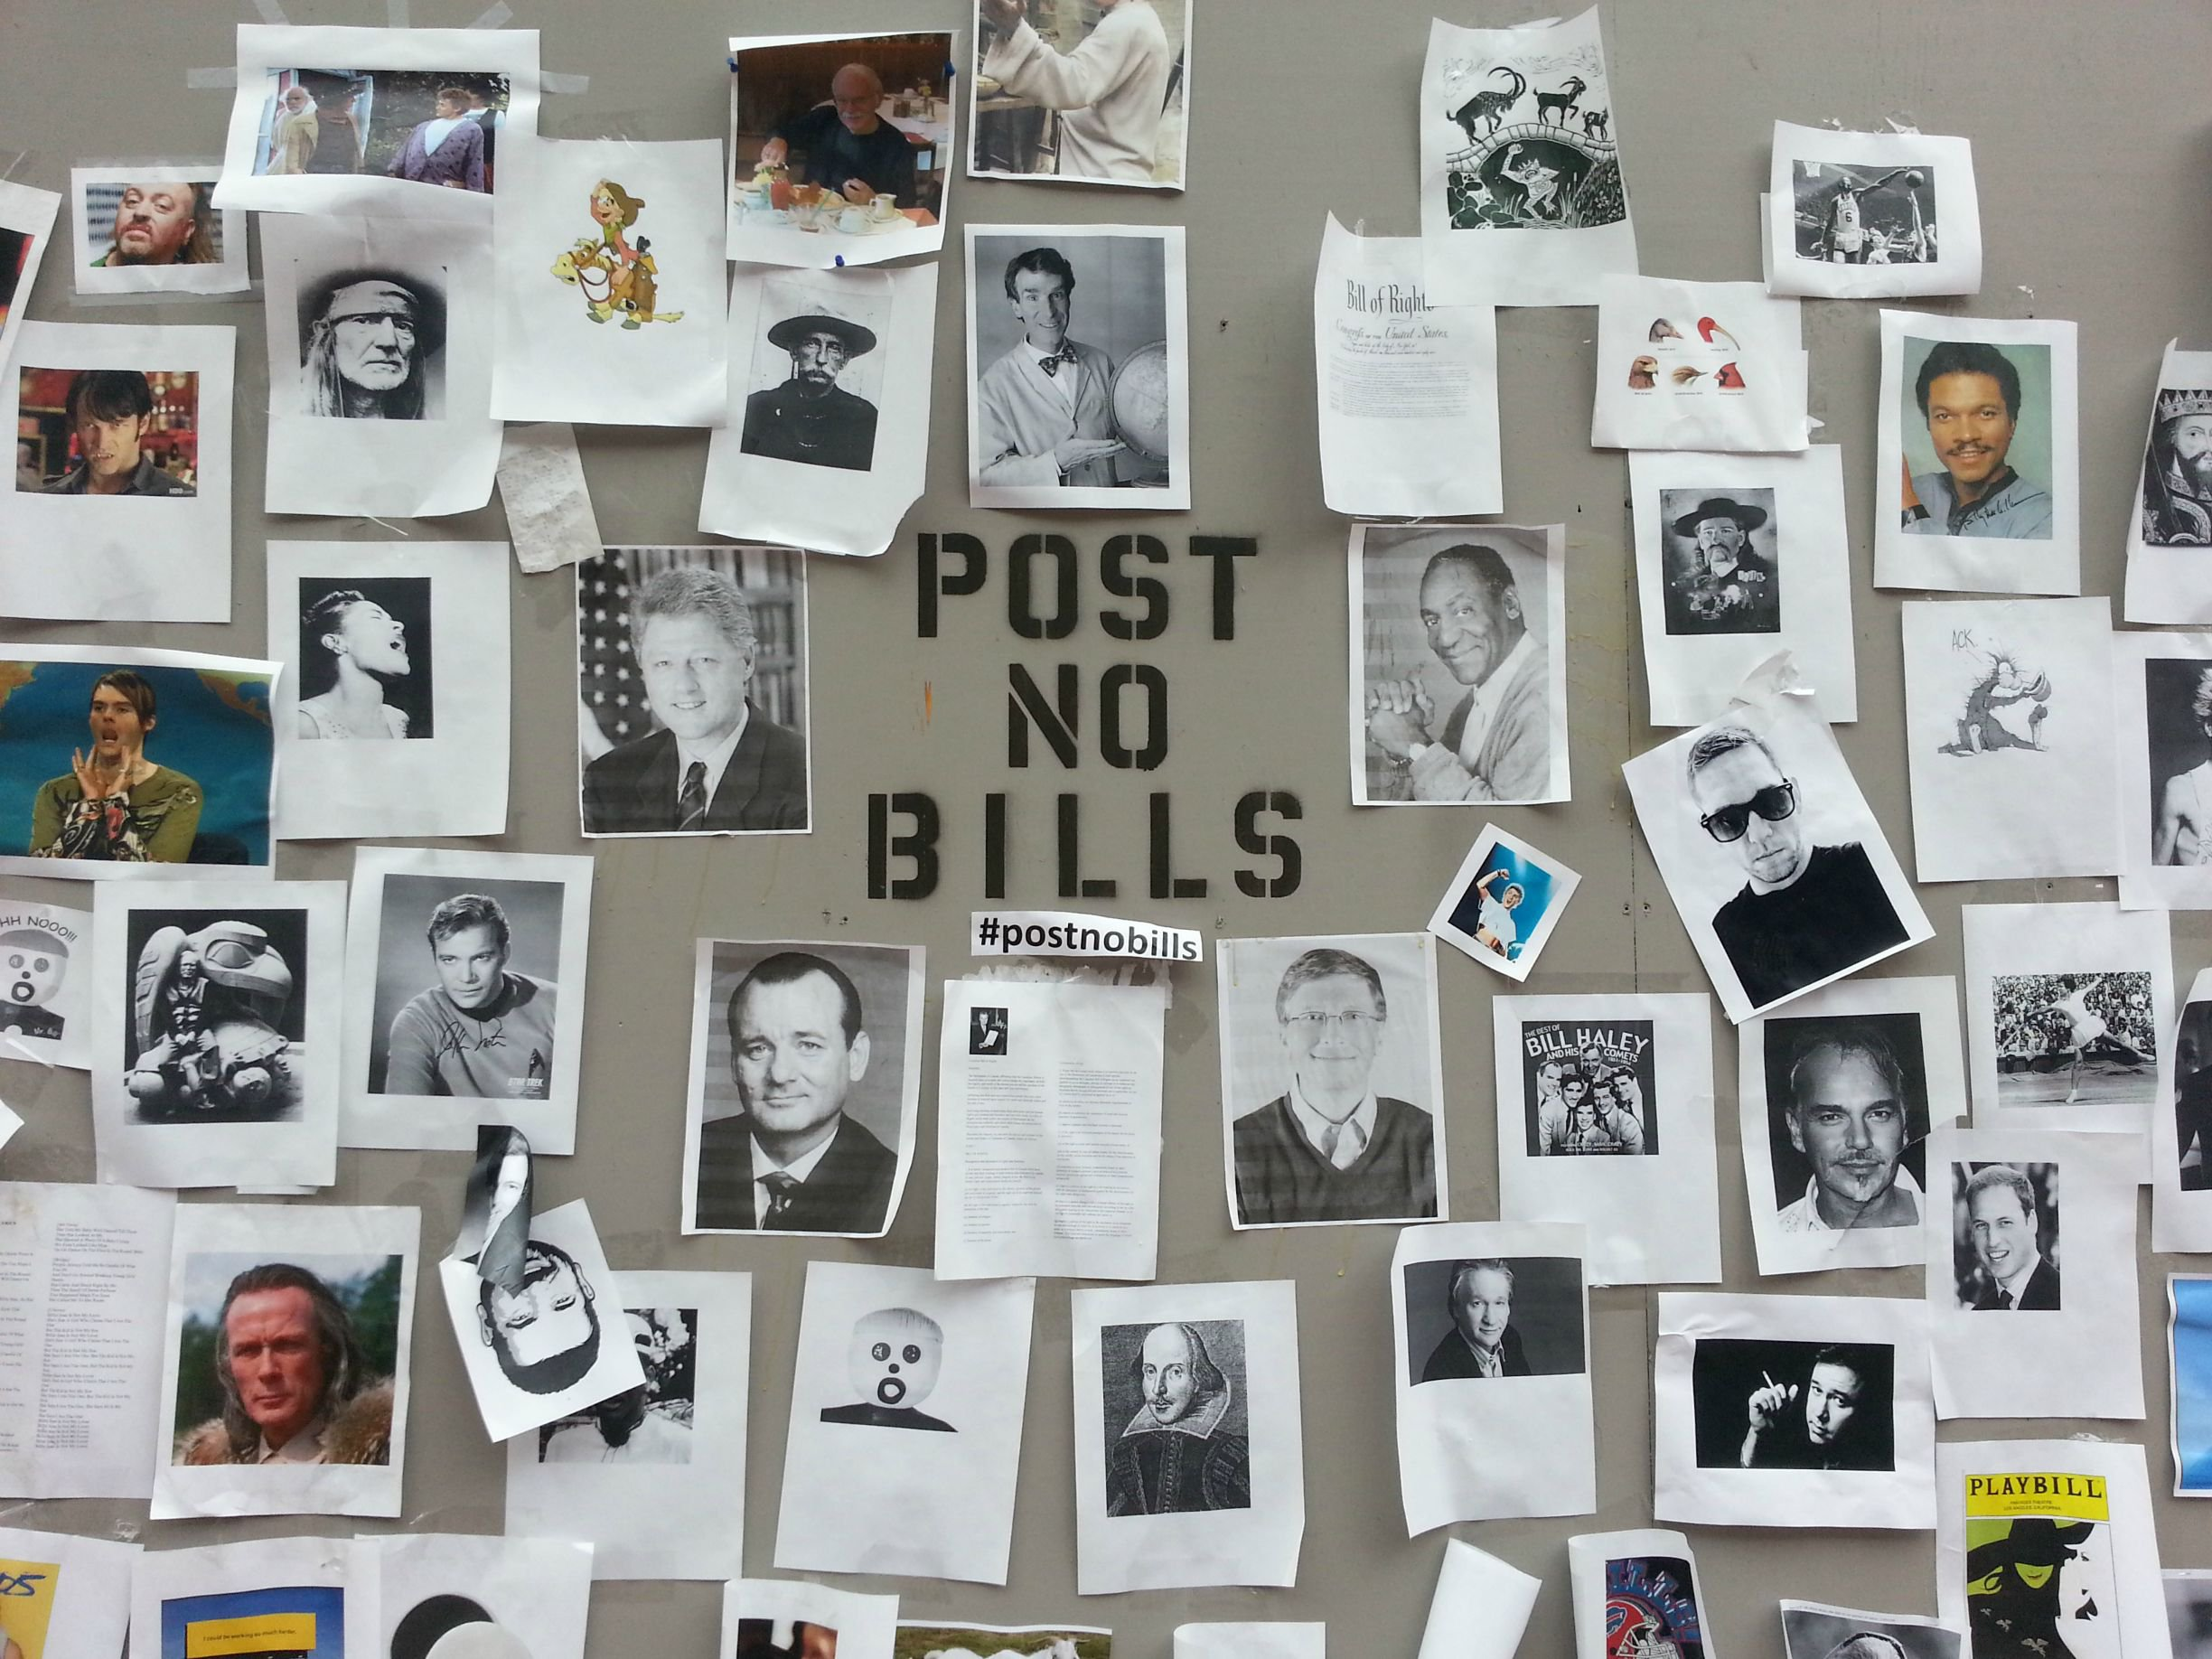 10b750dc13447e26737254ed4c0280b7-post-no-bills-please